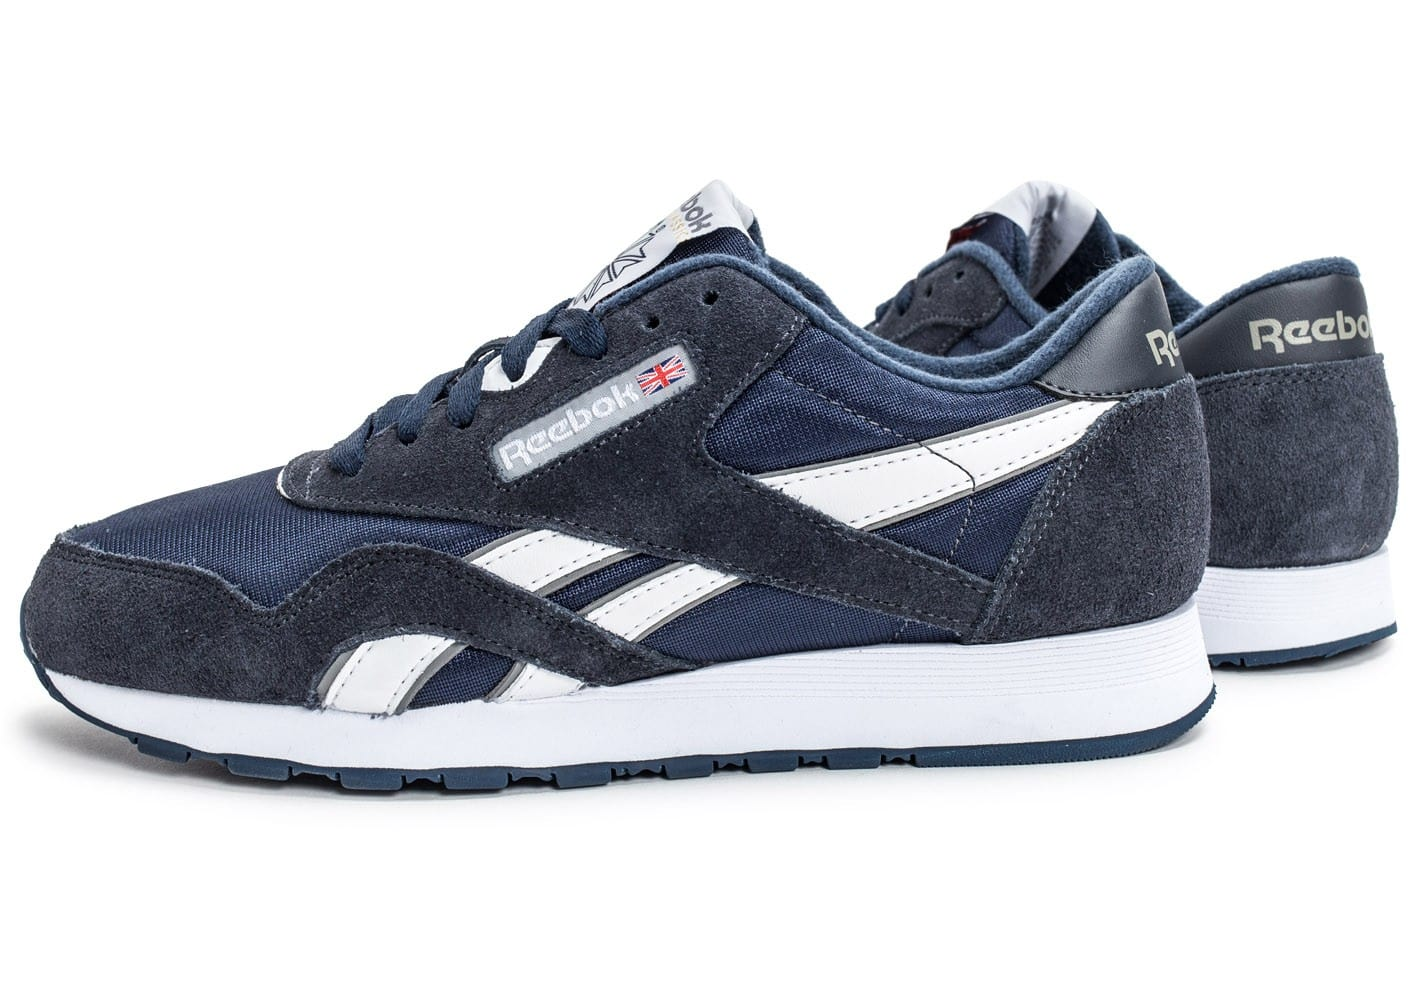 reebok classic nylon bleu marine chaussures homme chausport. Black Bedroom Furniture Sets. Home Design Ideas